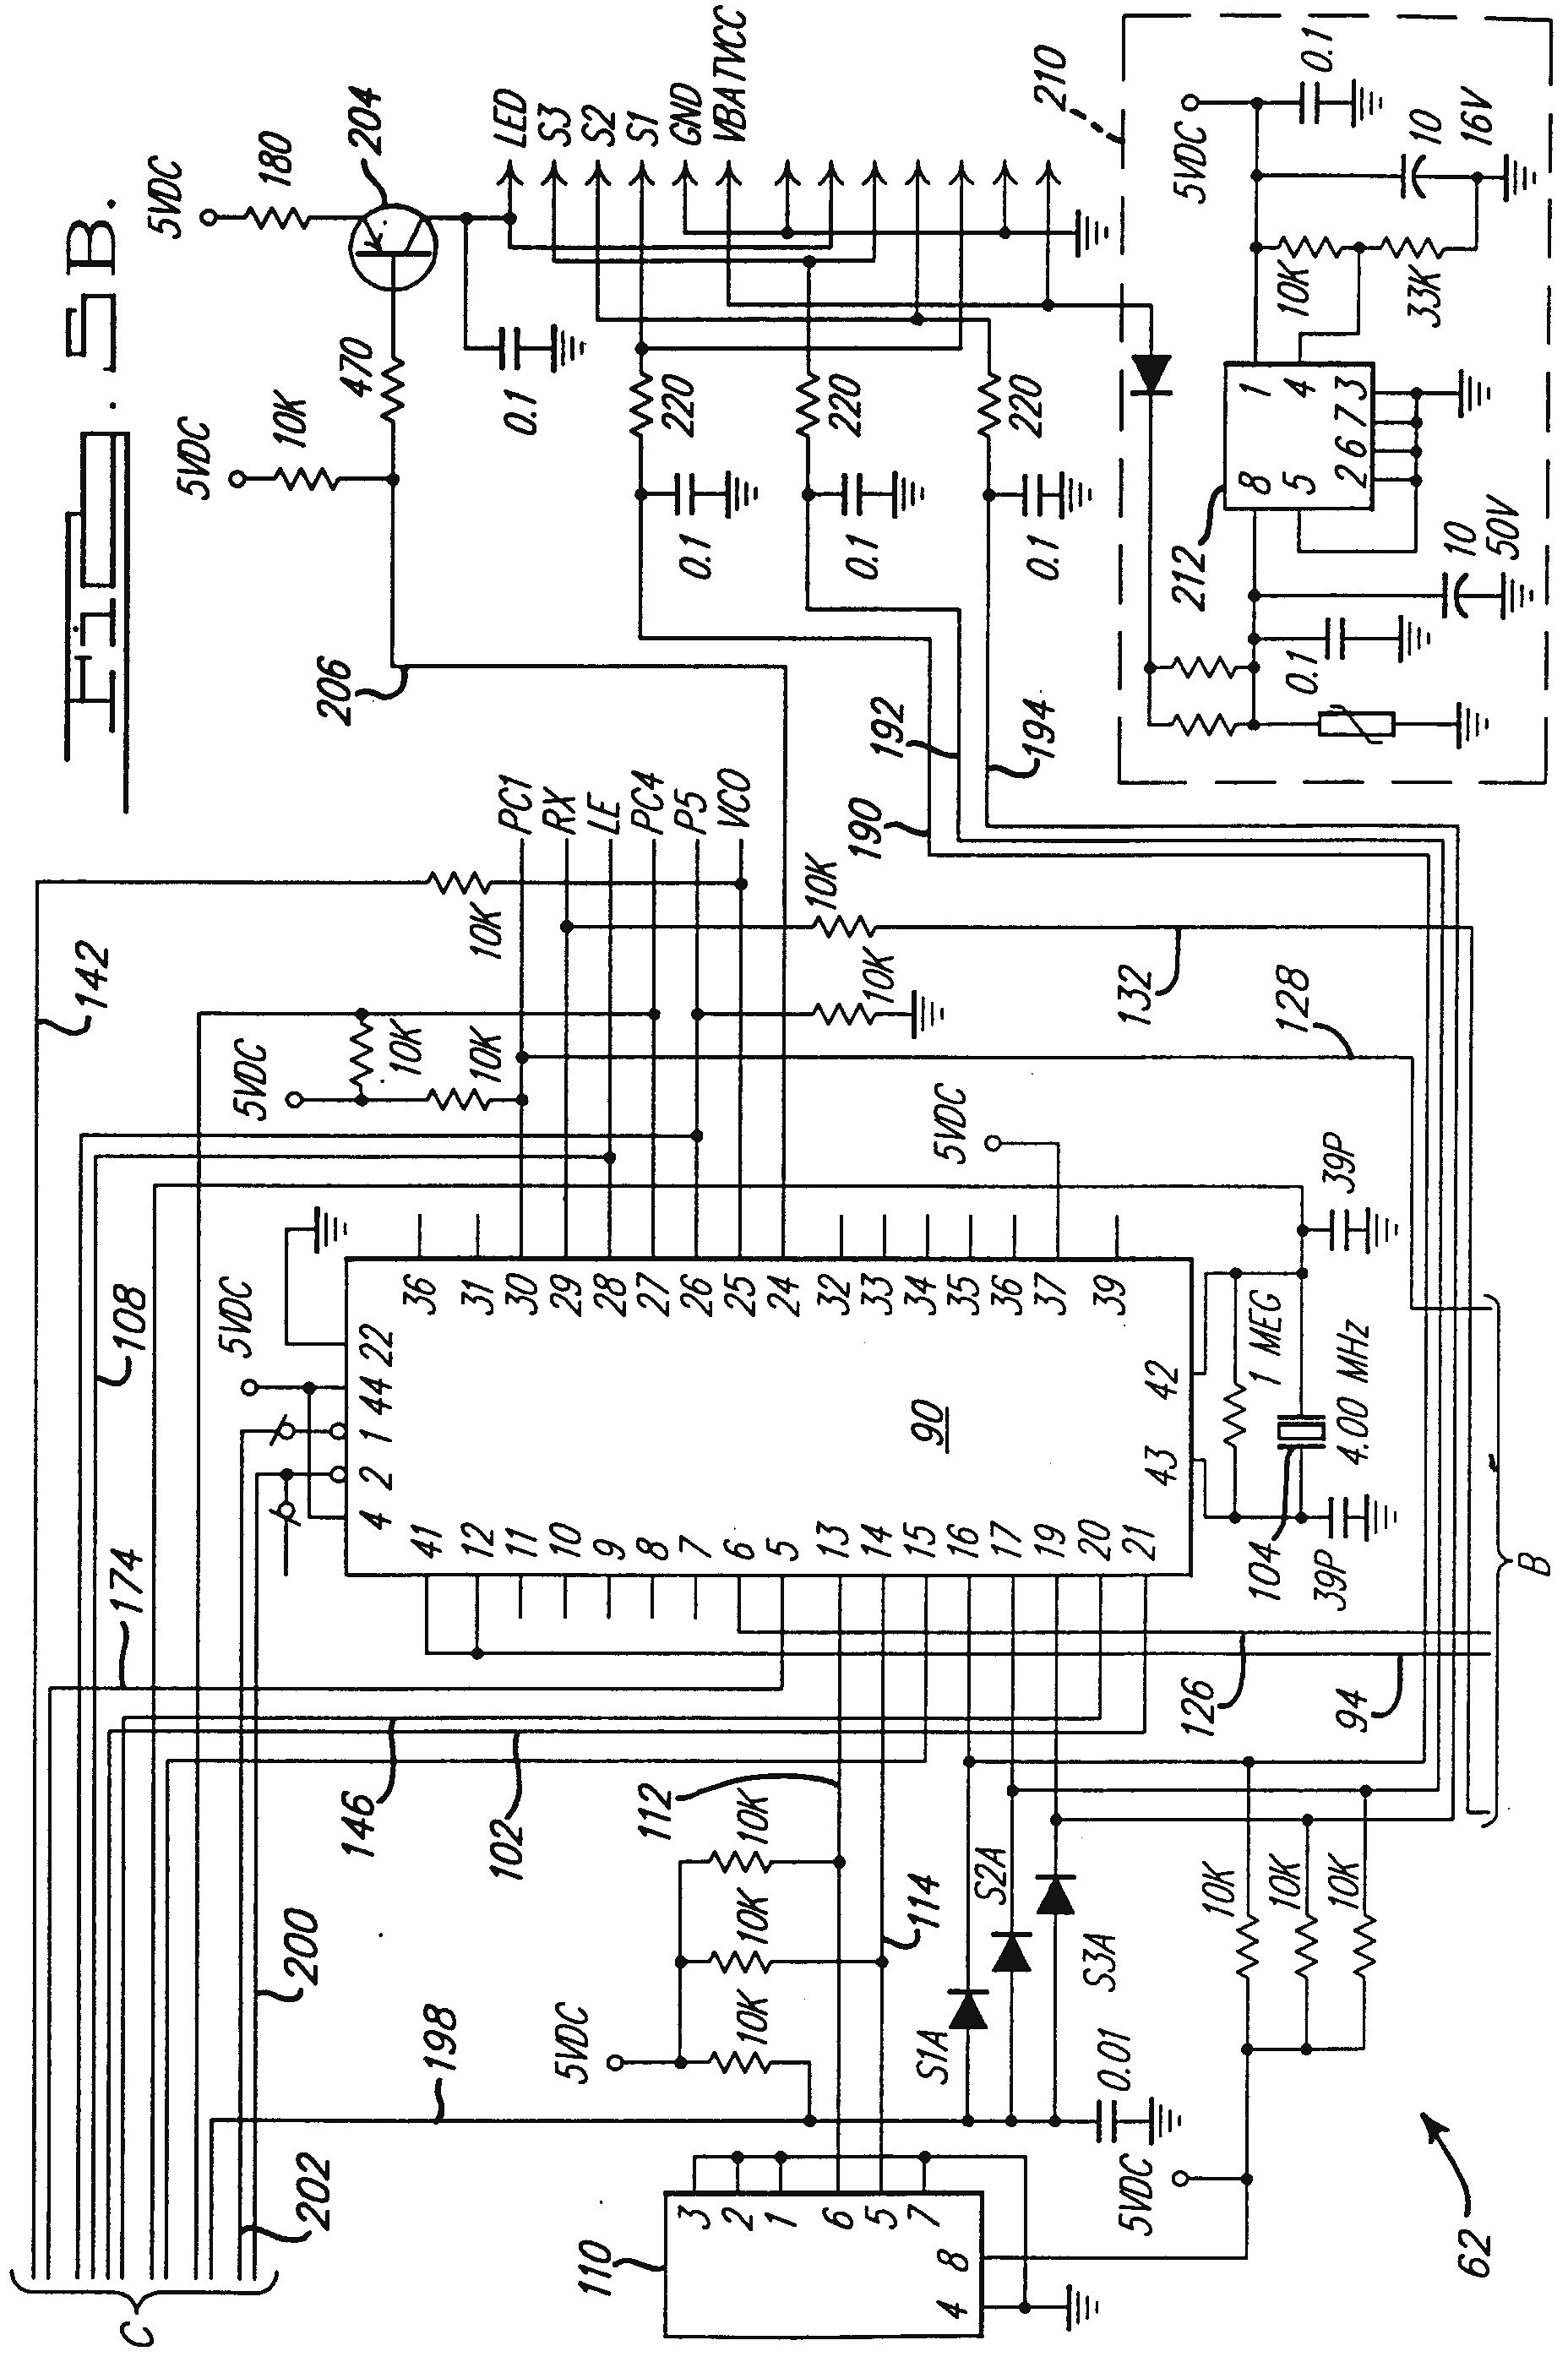 wiring schematic for genie garage door opener